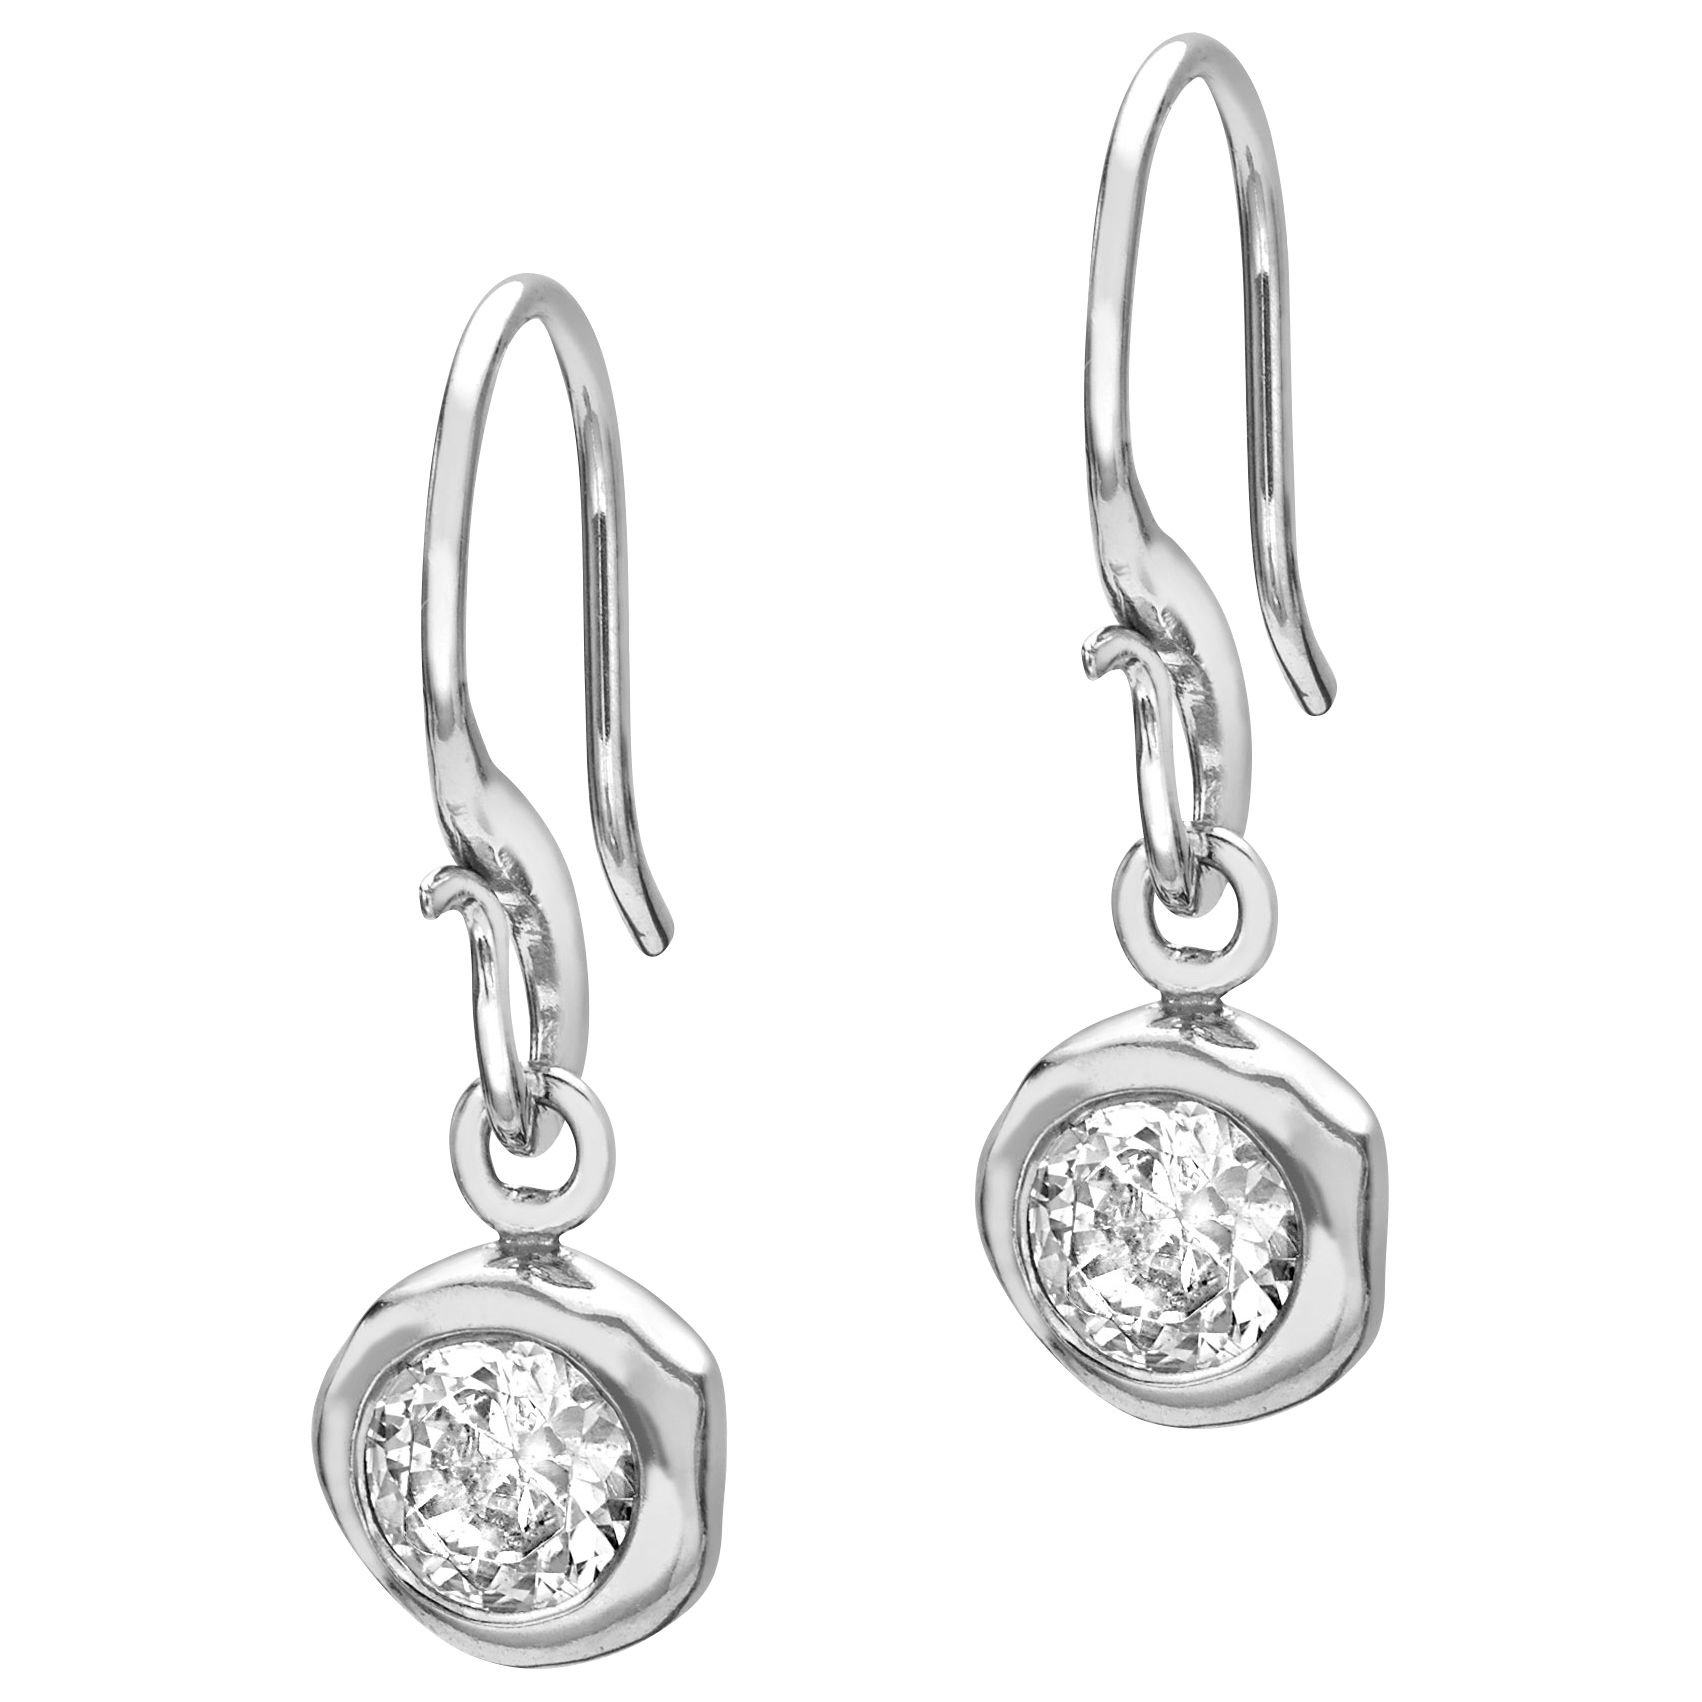 Dower & Hall Dower & Hall Sterling Silver White Topaz Dewdrop Earrings, Silver